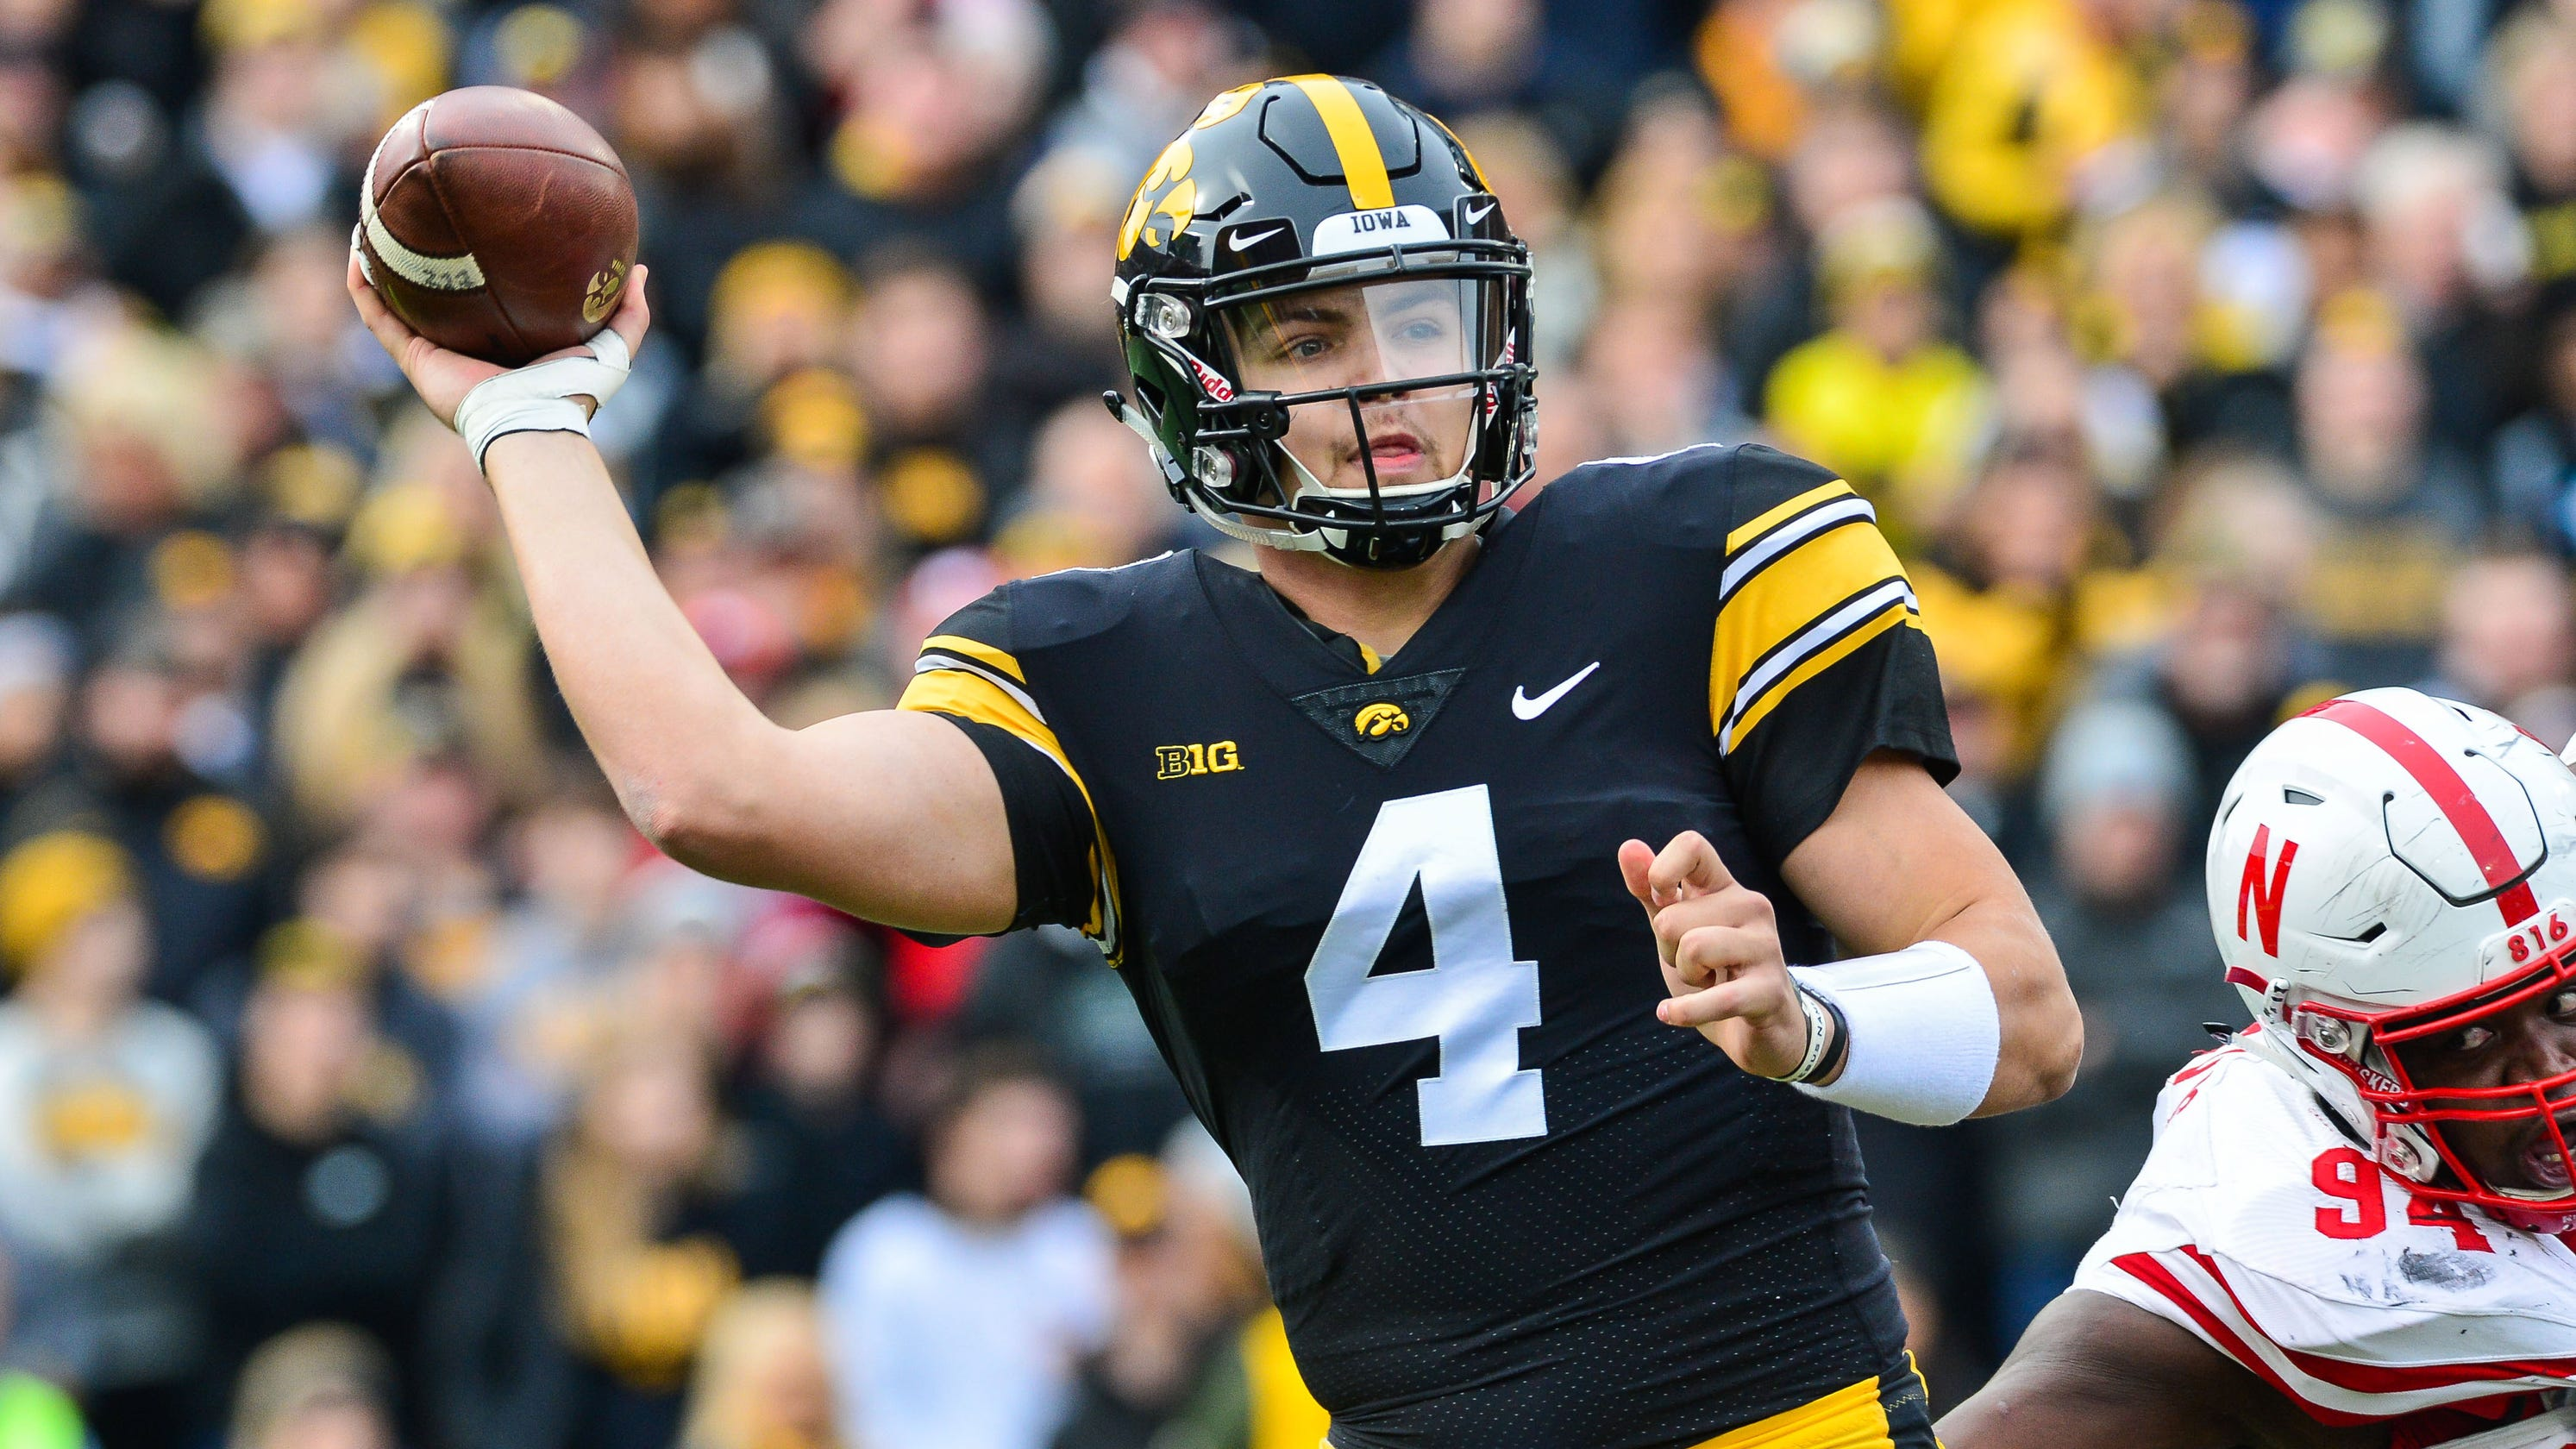 Iowa's Nate Stanley opens up about his critics, his thumb ...